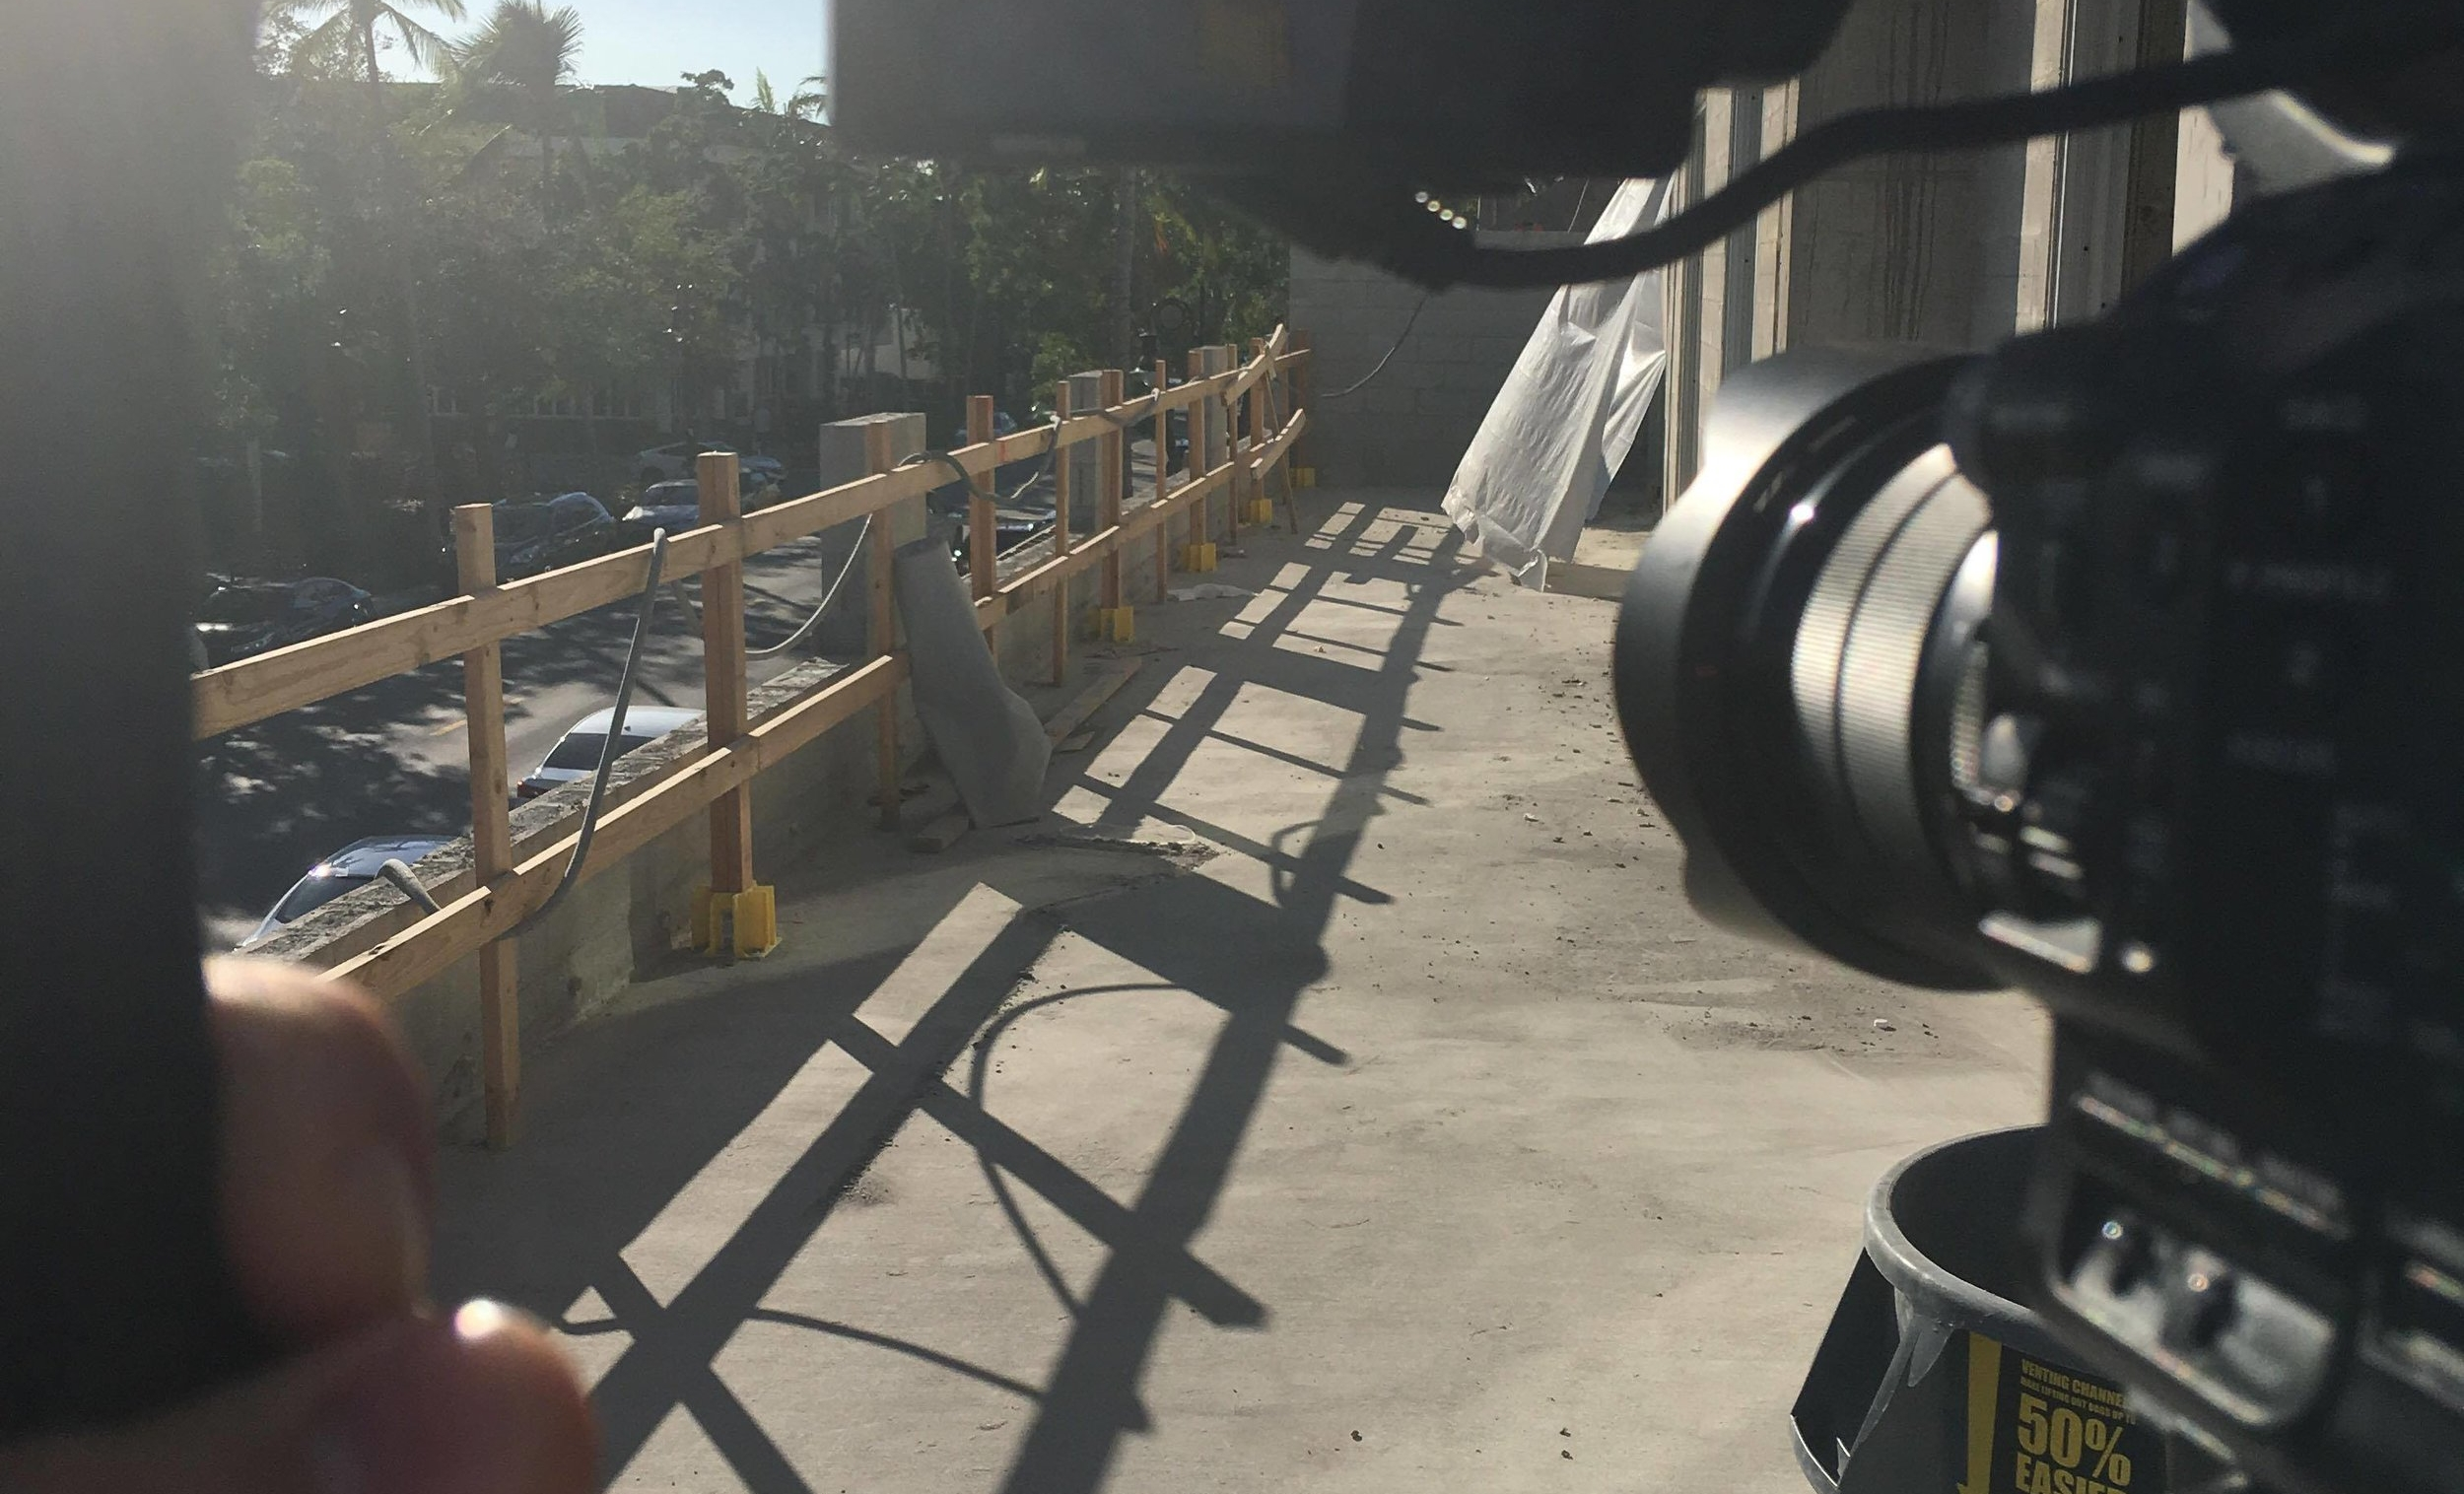 Shooting B-Roll of One of the Balconies.